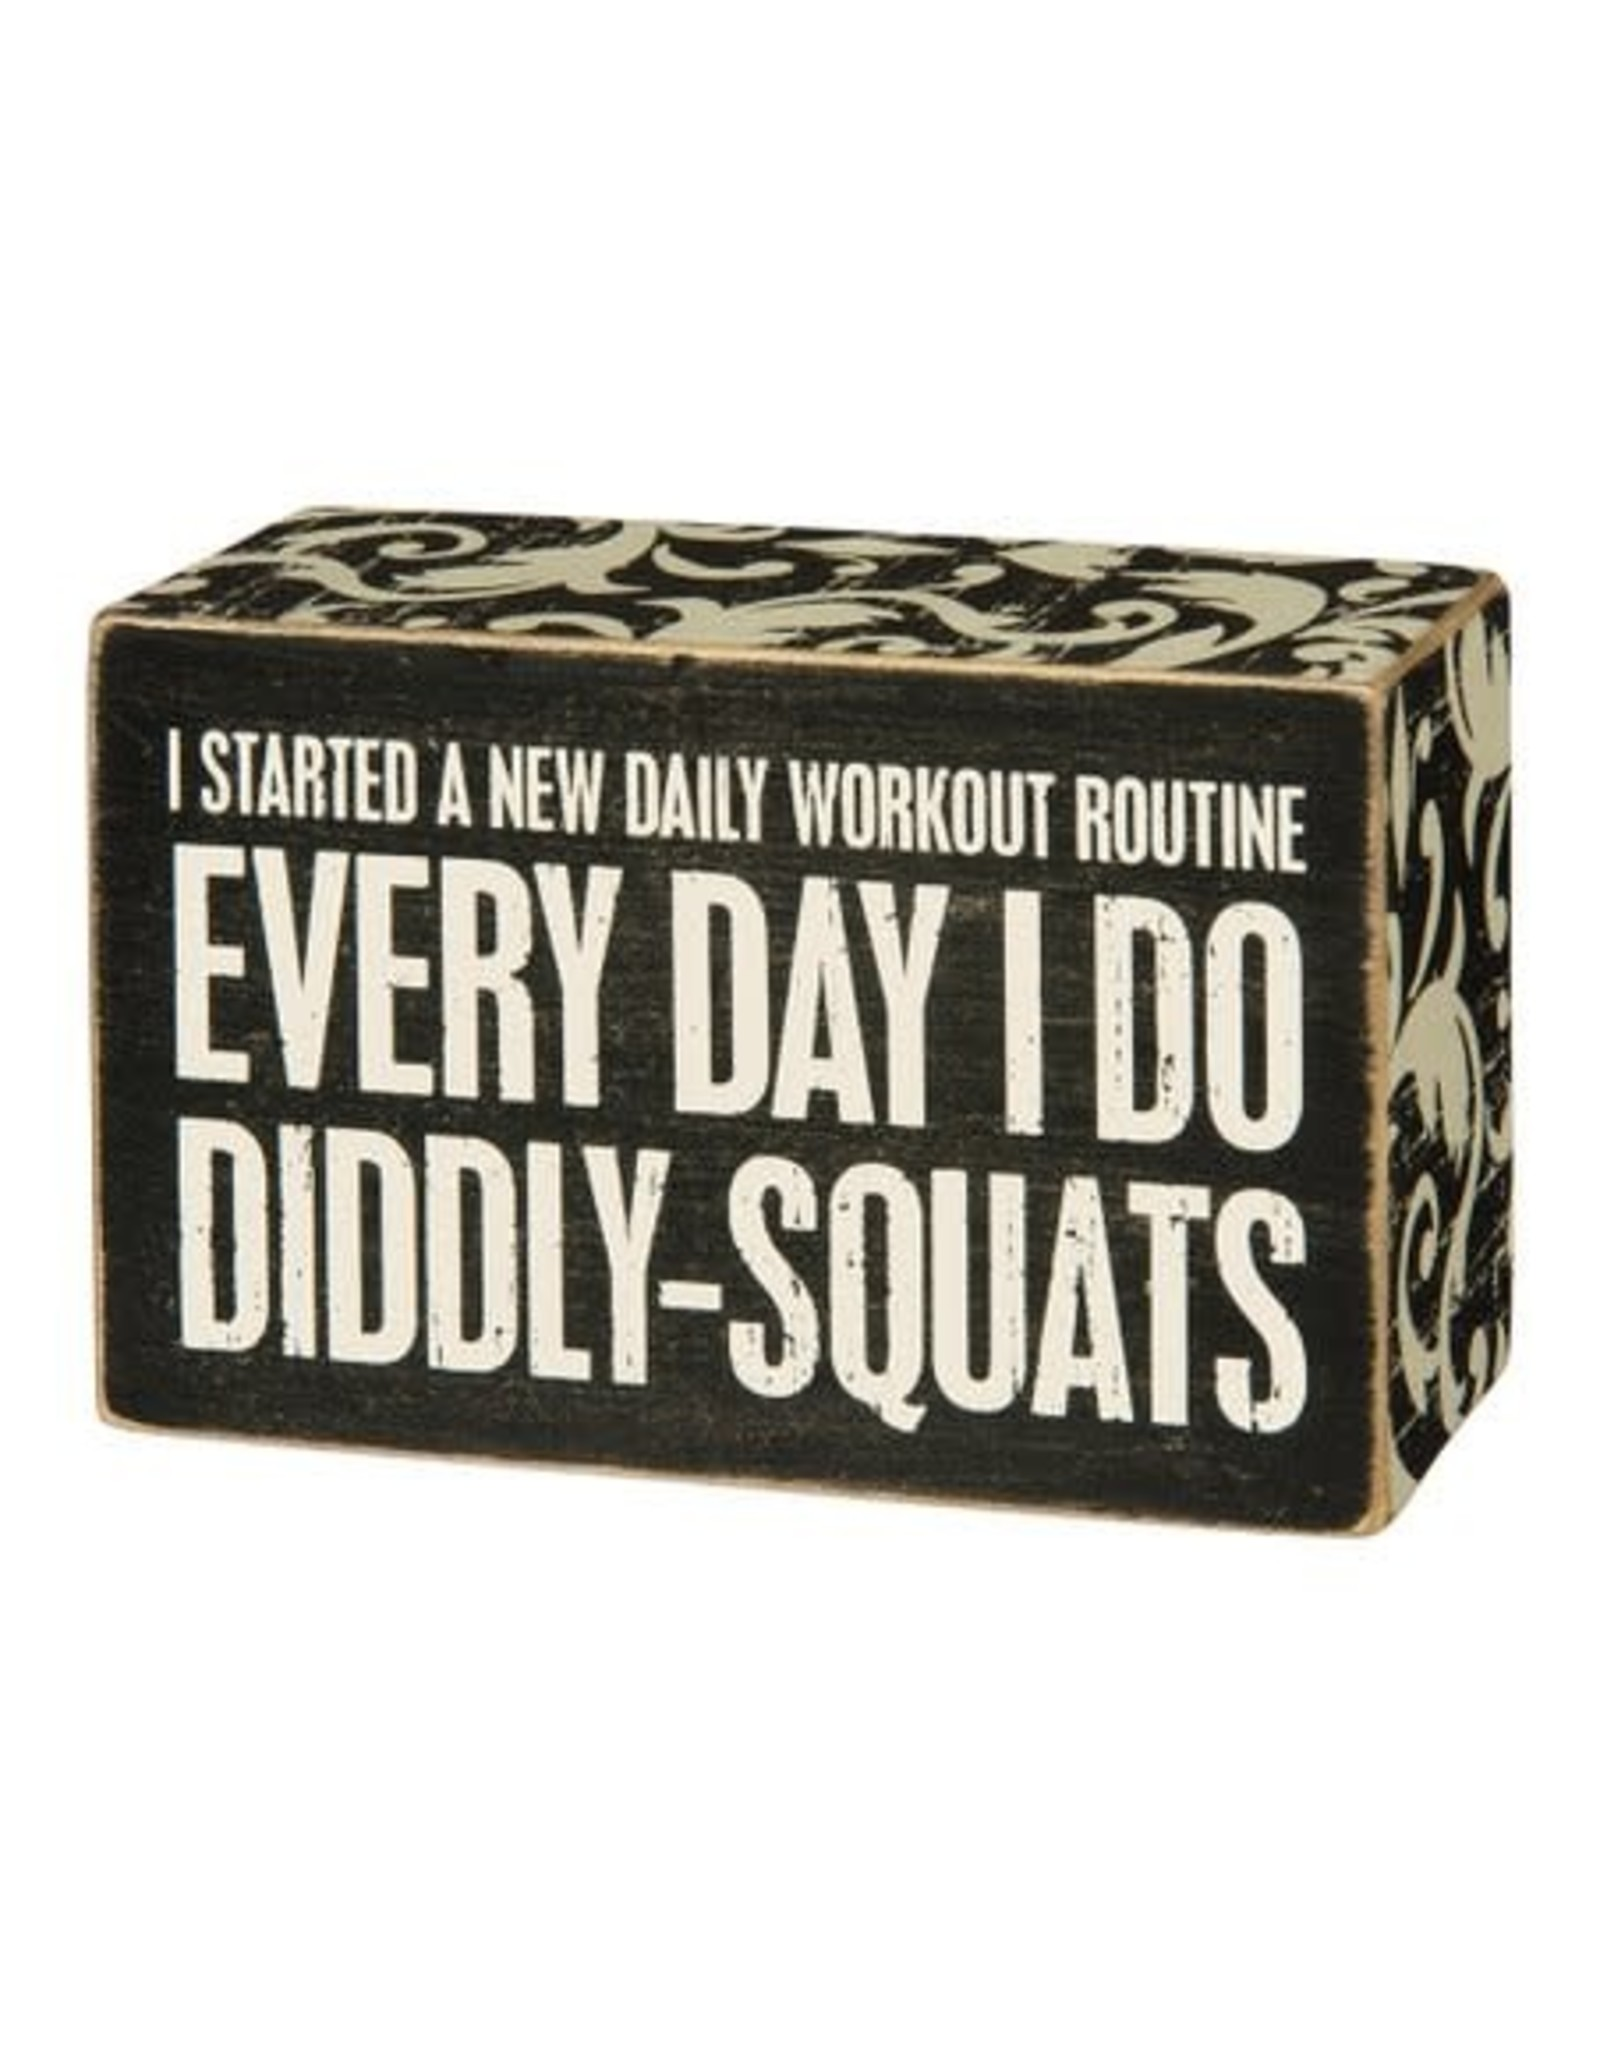 PRIMITIVES BY KATHY ATTITUDE BLOCK SIGNS DIDDLY SQUATS